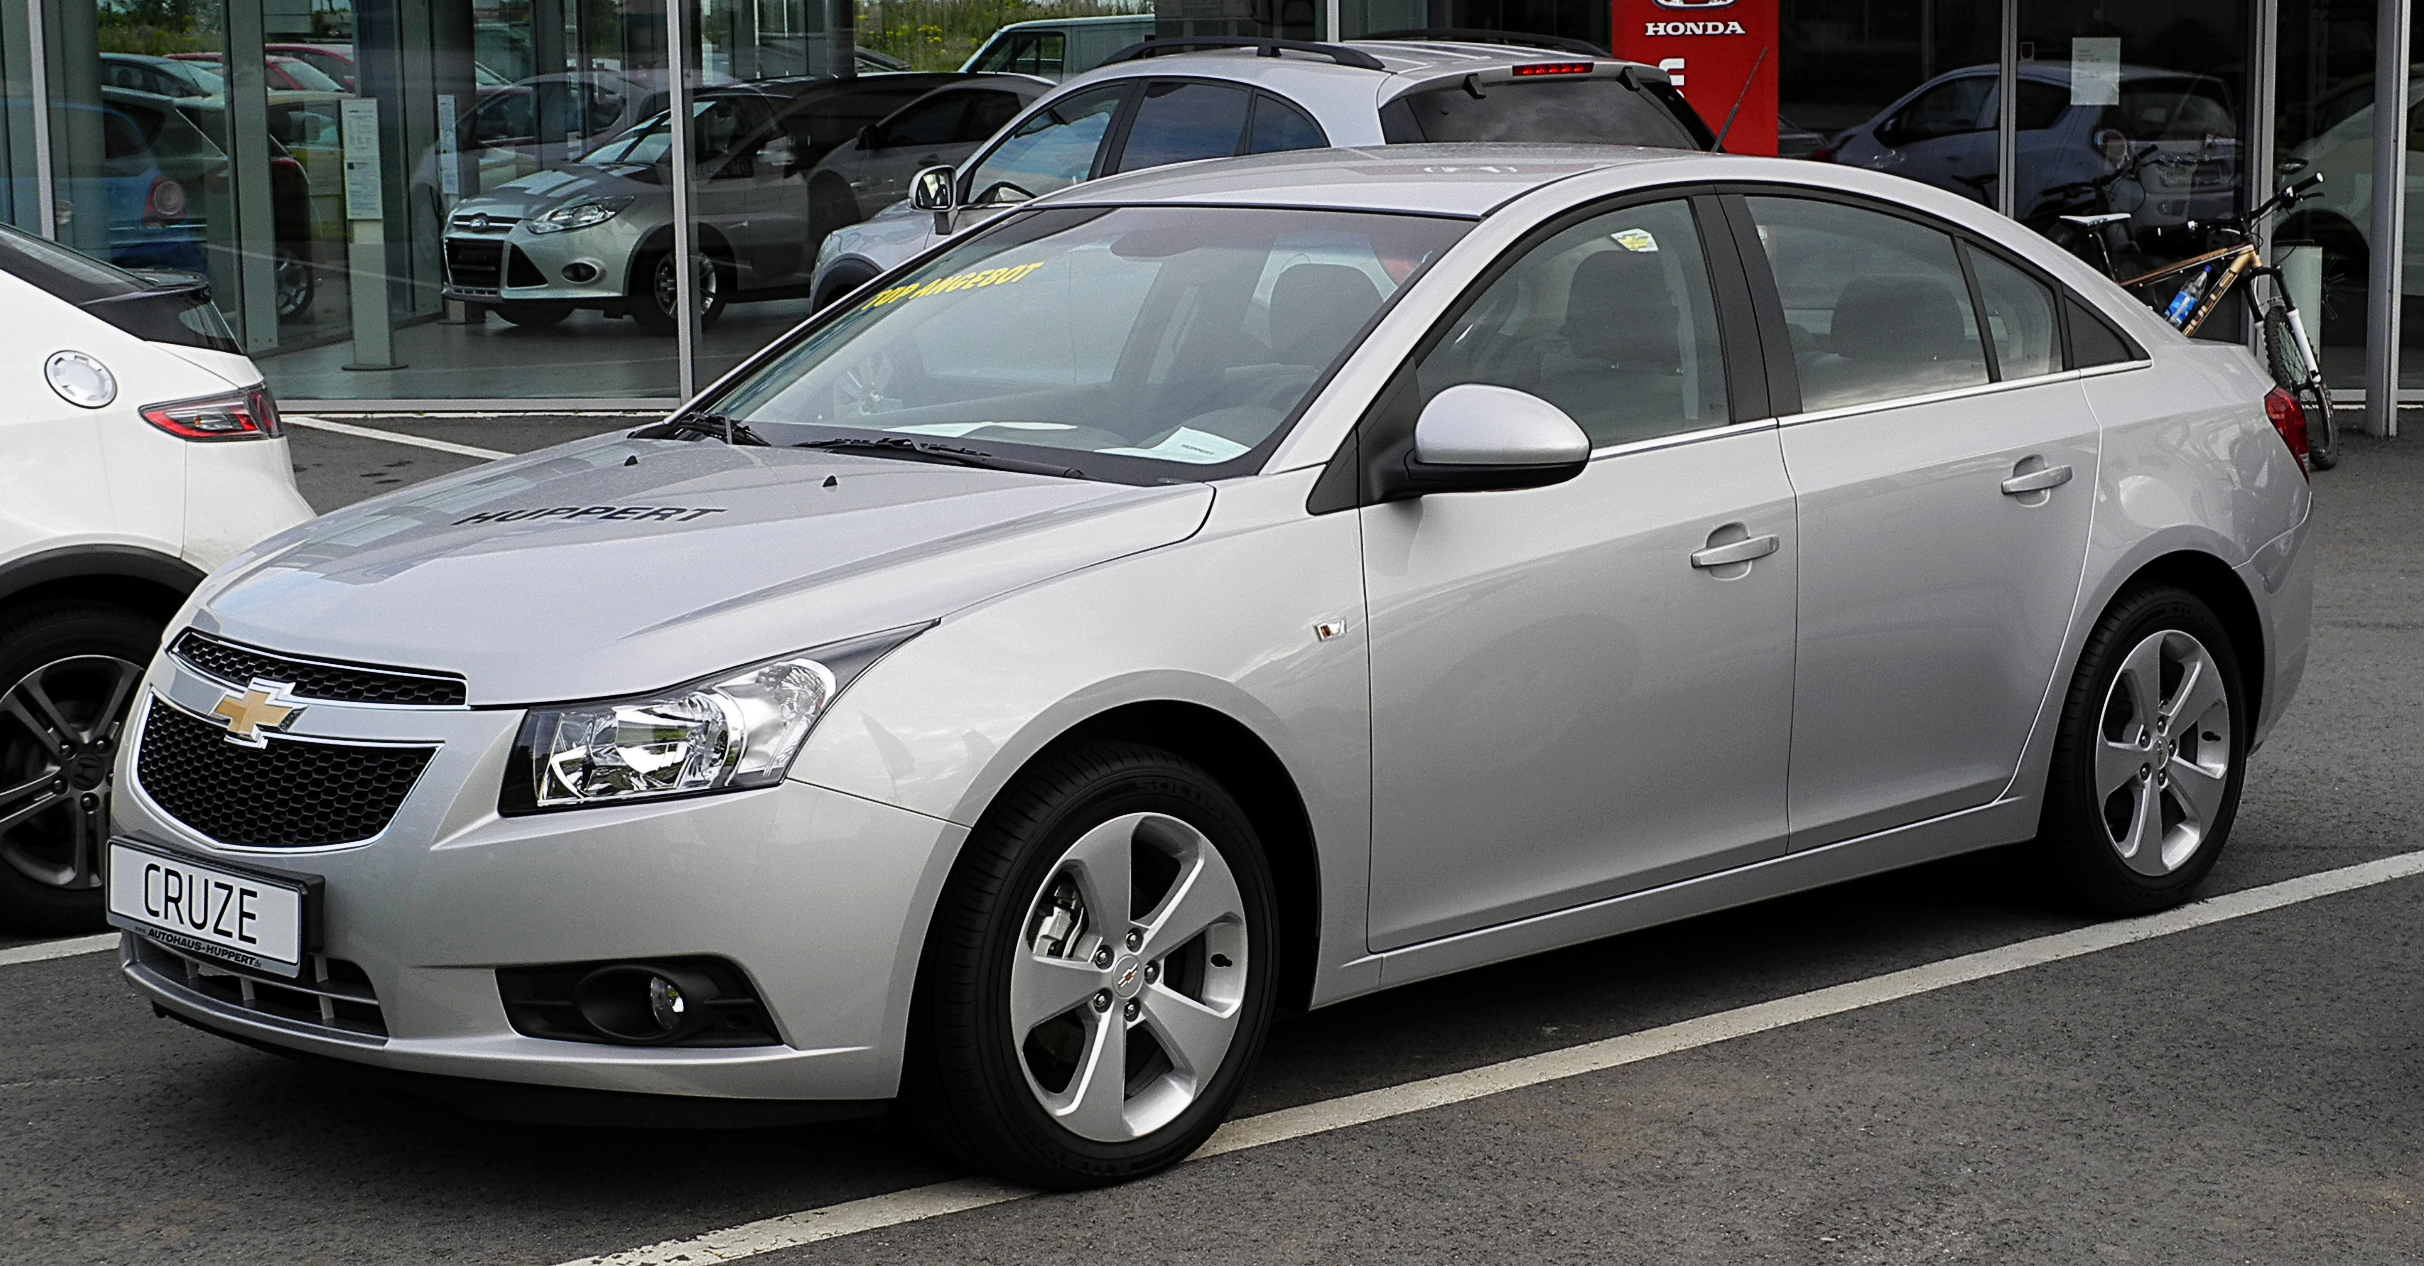 Chevrolet Cruze Cars For Sale Near Me